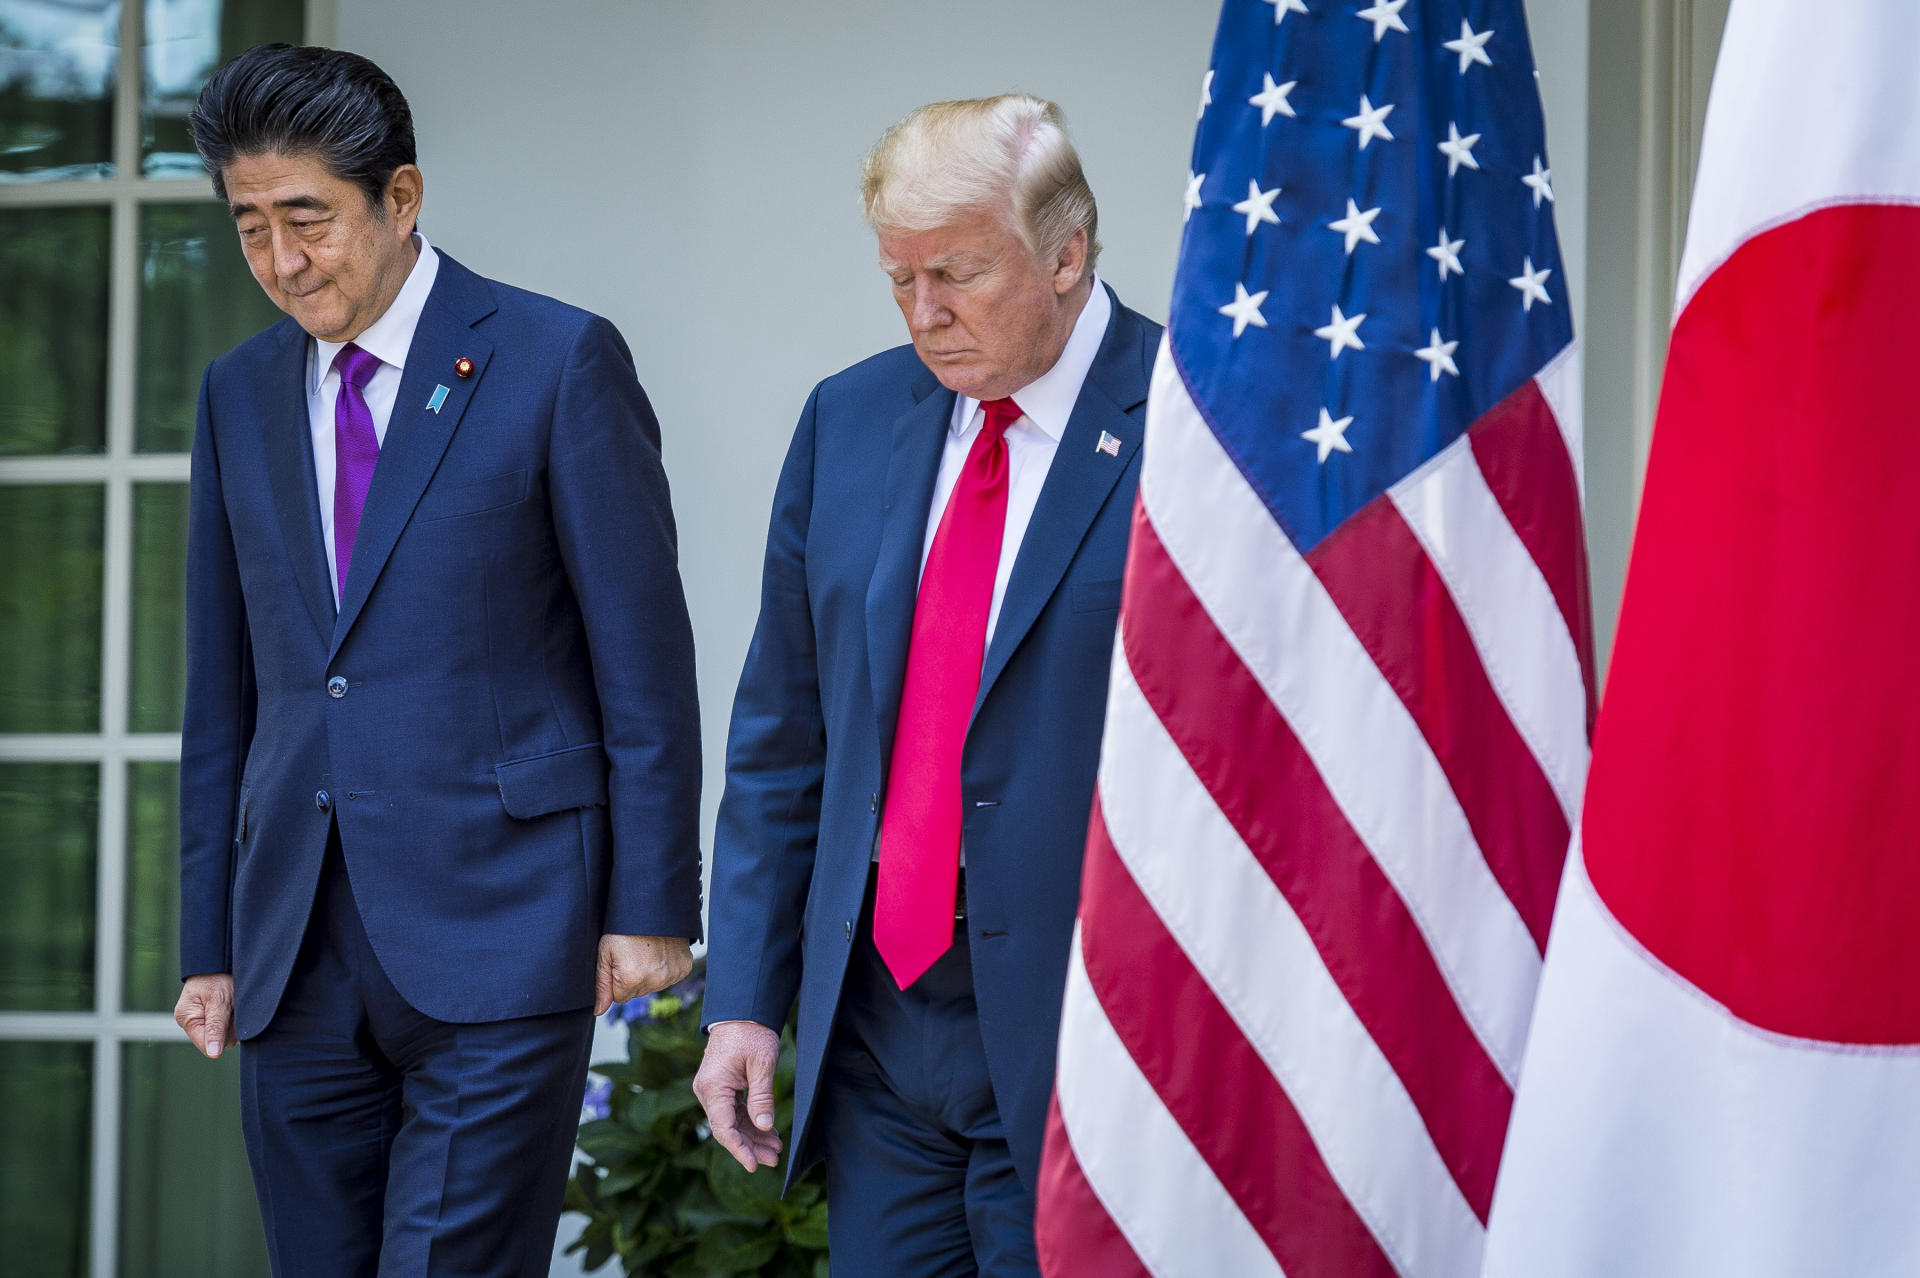 Why Does Trump Want to Turn America Japanese?